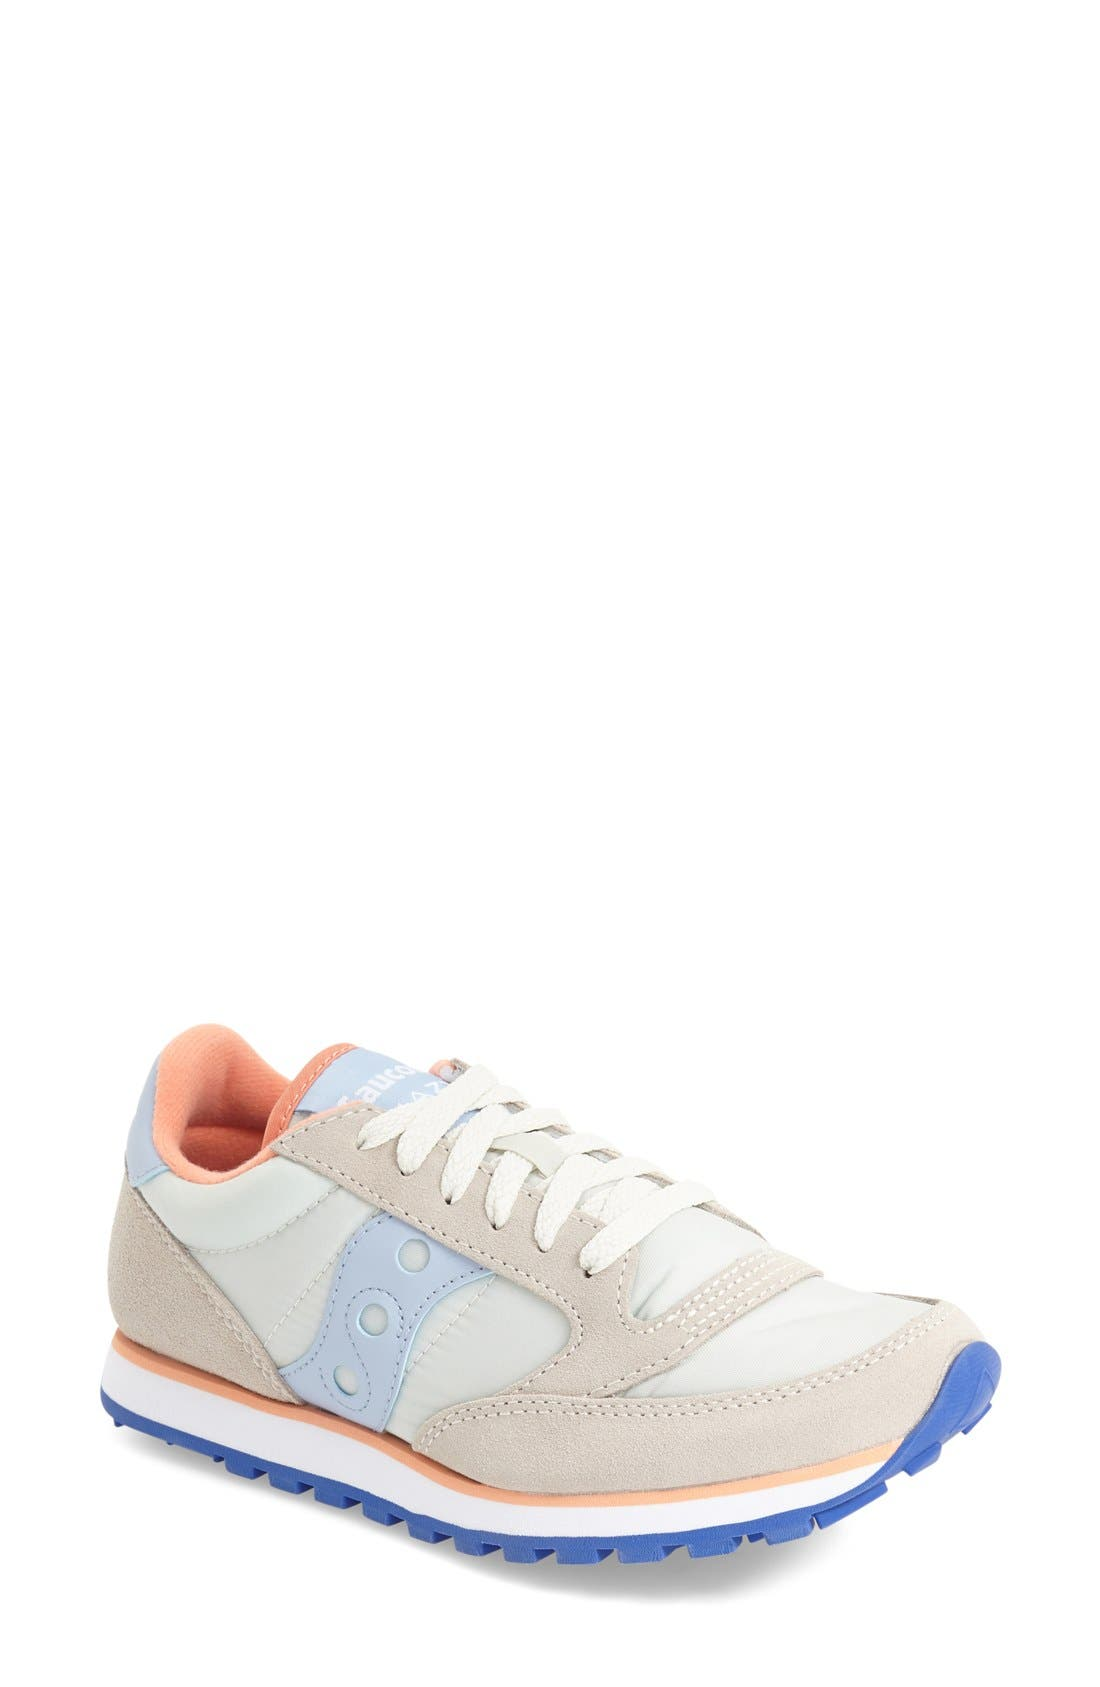 Alternate Image 1 Selected - Saucony 'Jazz - Low Pro' Sneaker (Women)